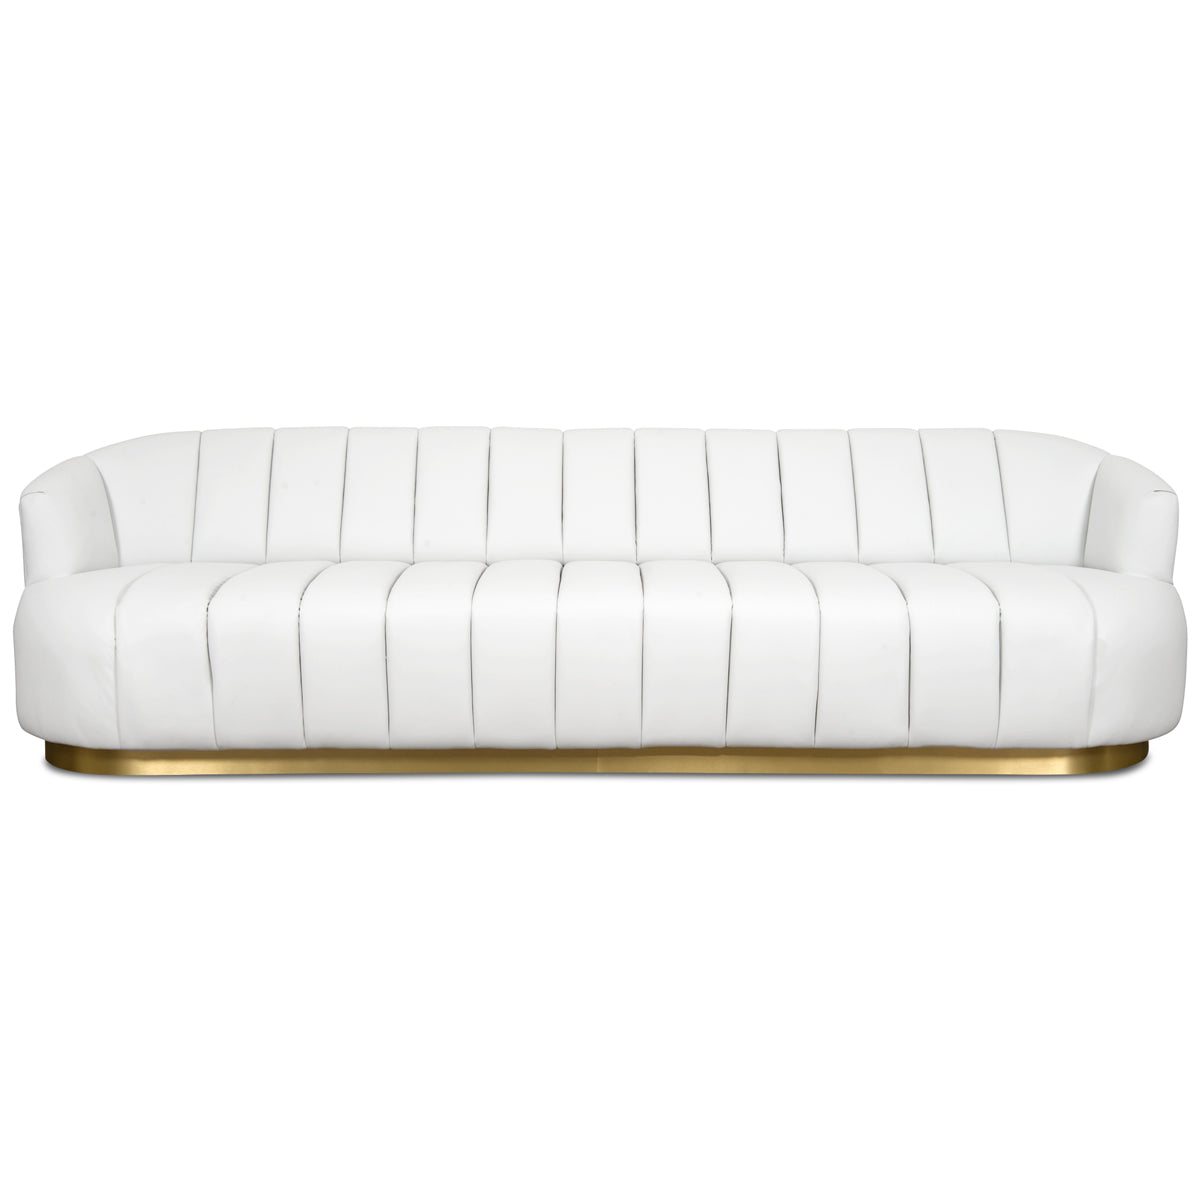 Avalon Sofa in Faux Leather - ModShop1.com